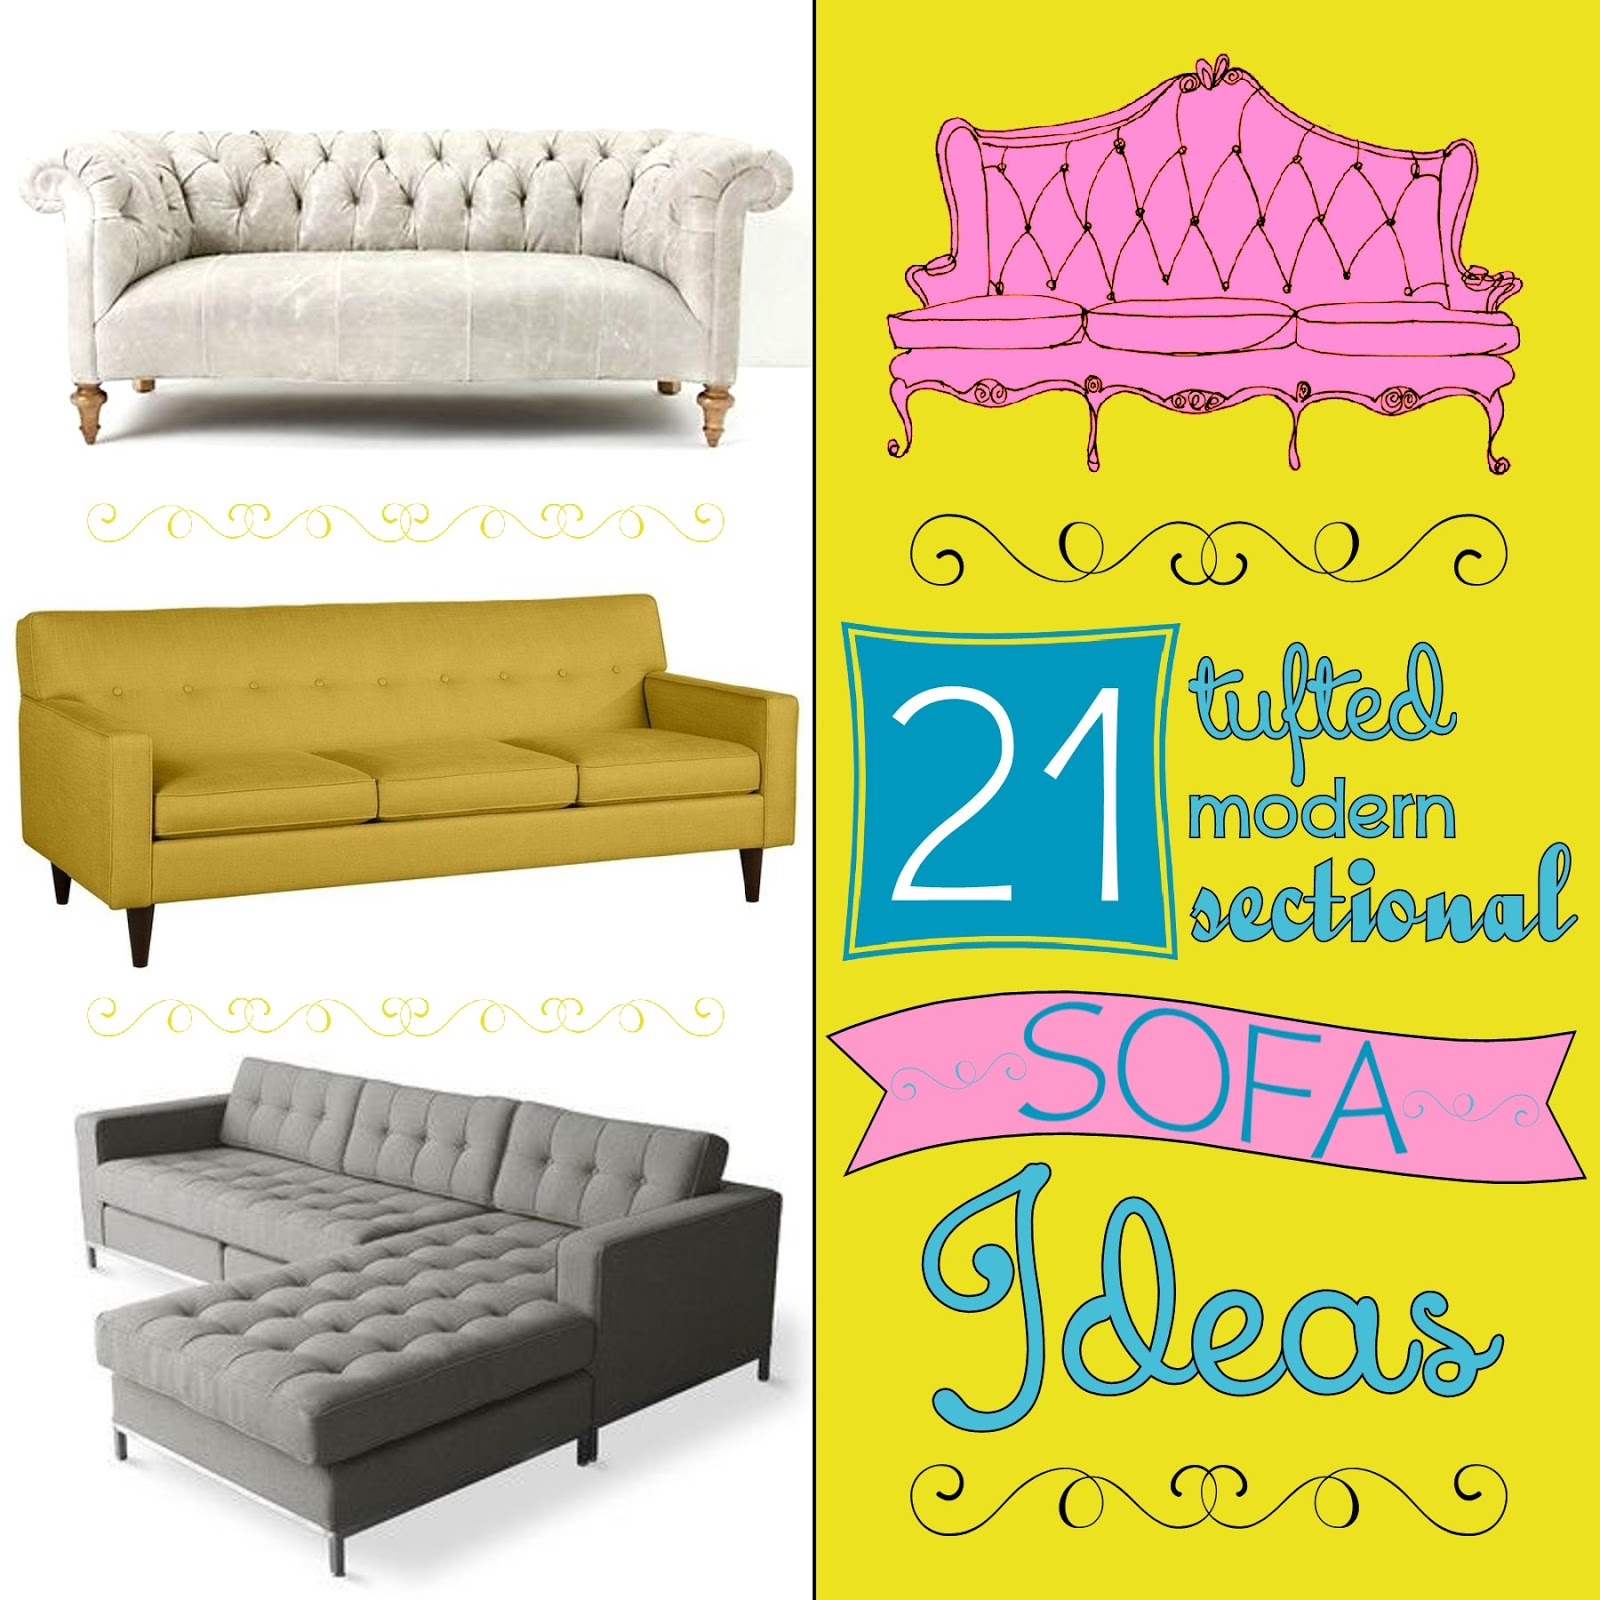 Lovely 21 {Tufted, Modern, Sectional} Sofa Ideas